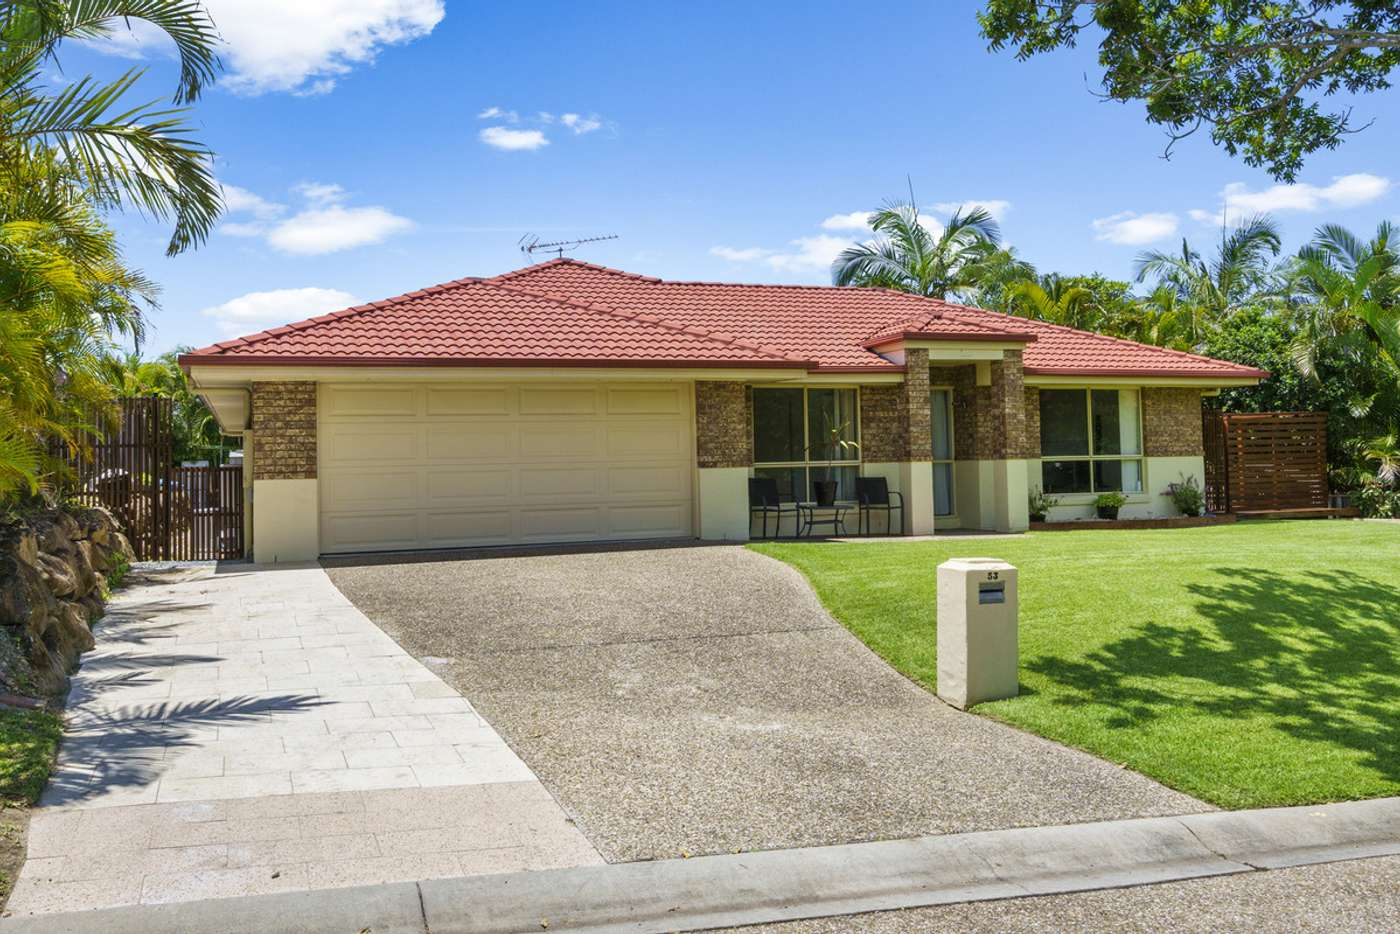 Main view of Homely house listing, 53 Cossington Circuit, Maudsland QLD 4210